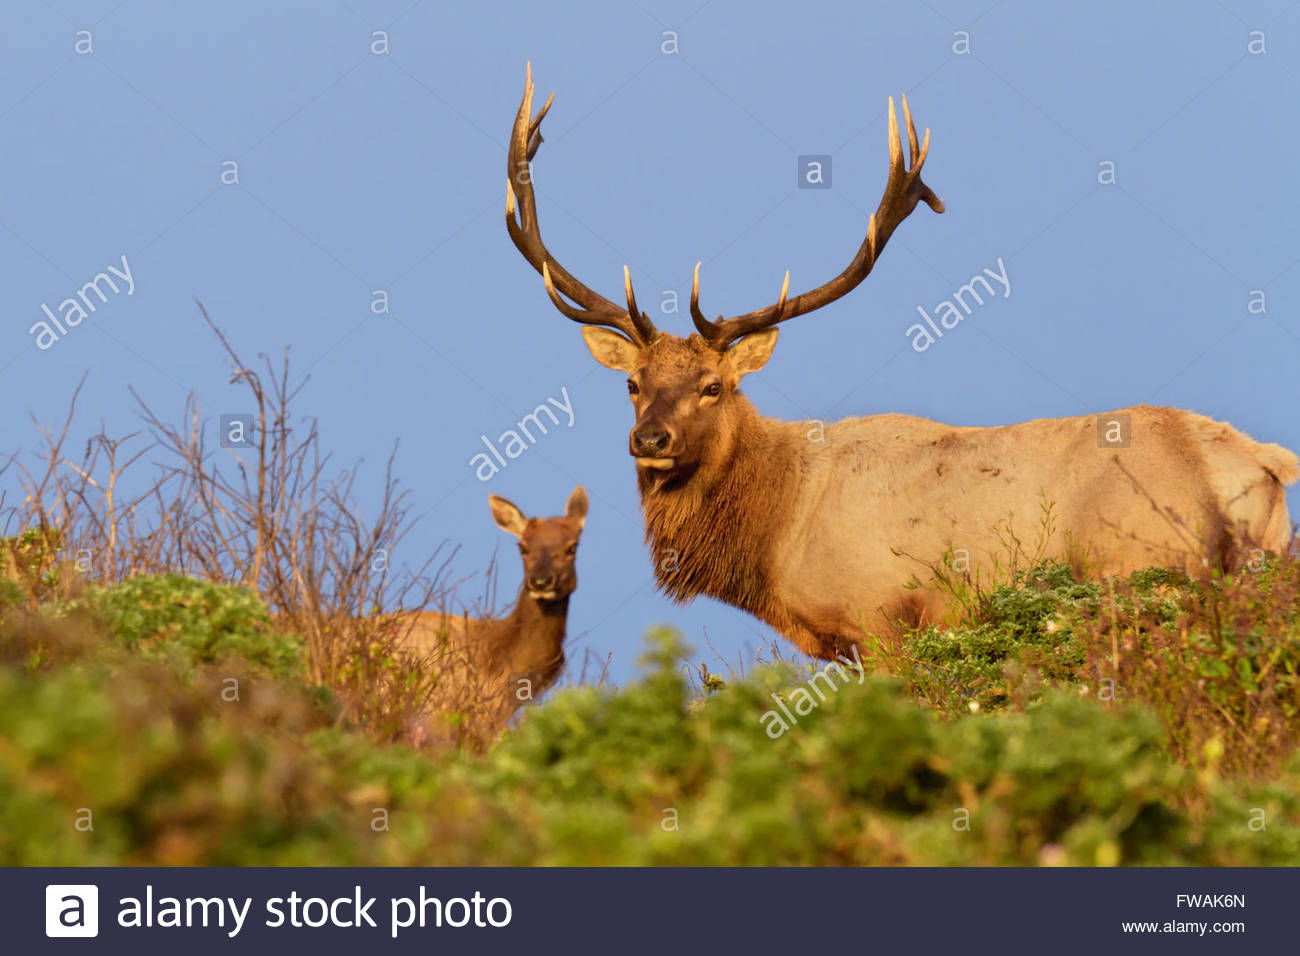 Male and Female Tule Elk standing in Sunset, Point Reyes National Seashore, CA - Stock Image